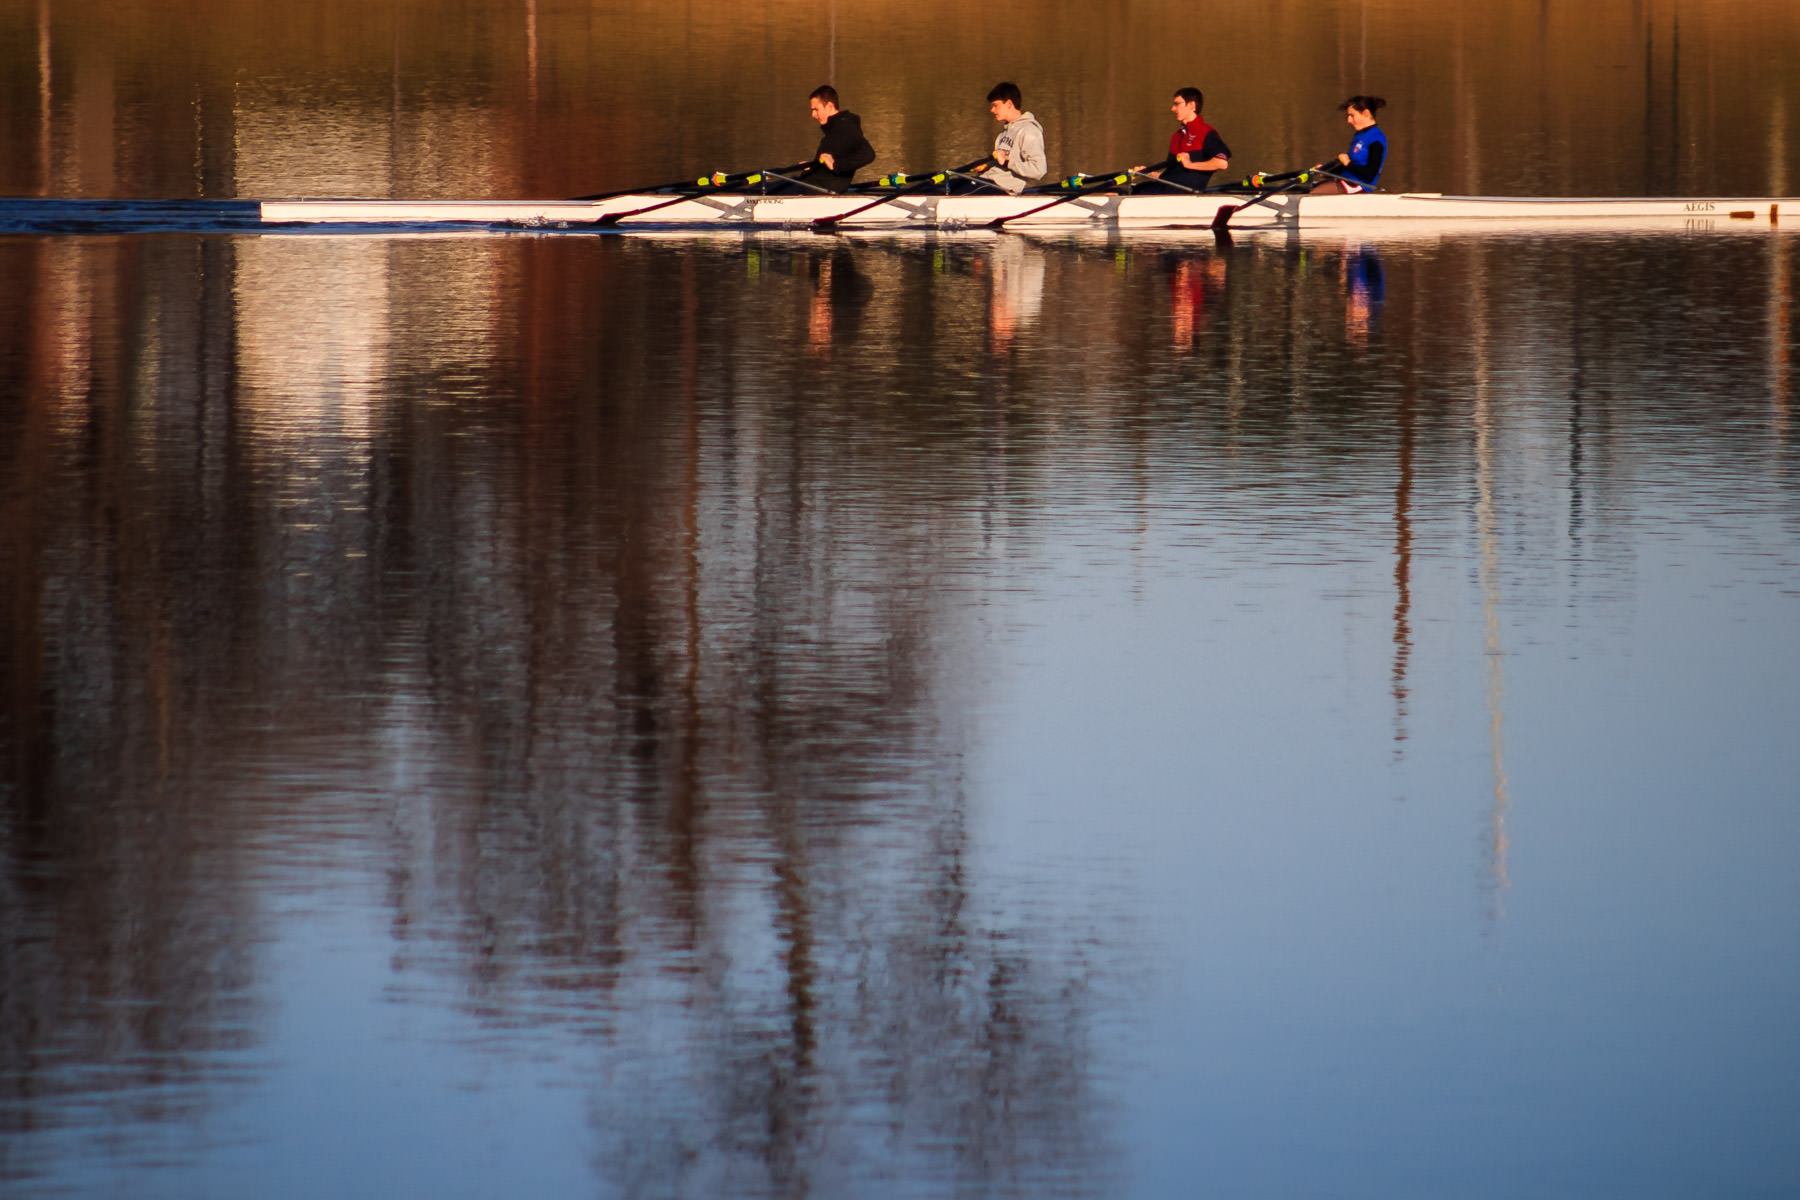 Rowers sculling at Bachman Lake Park, Dallas.